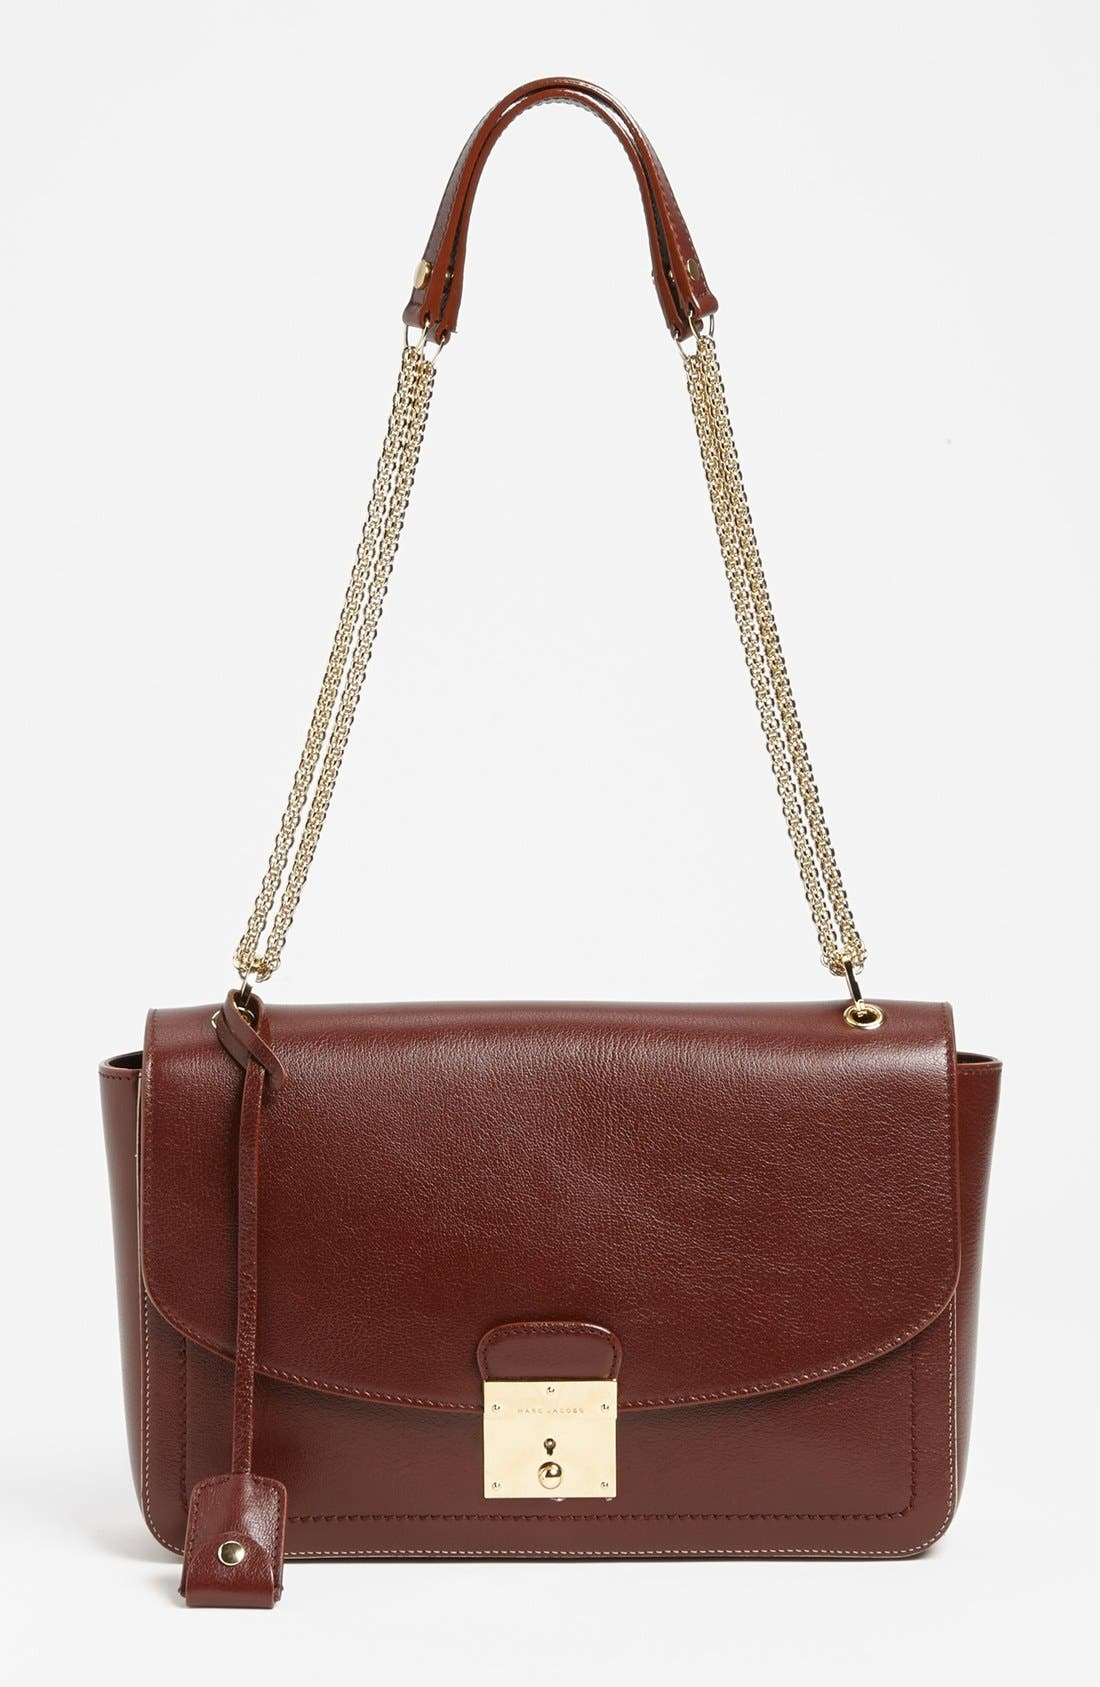 Main Image - MARC JACOBS '1984 Polly' Leather Shoulder Bag